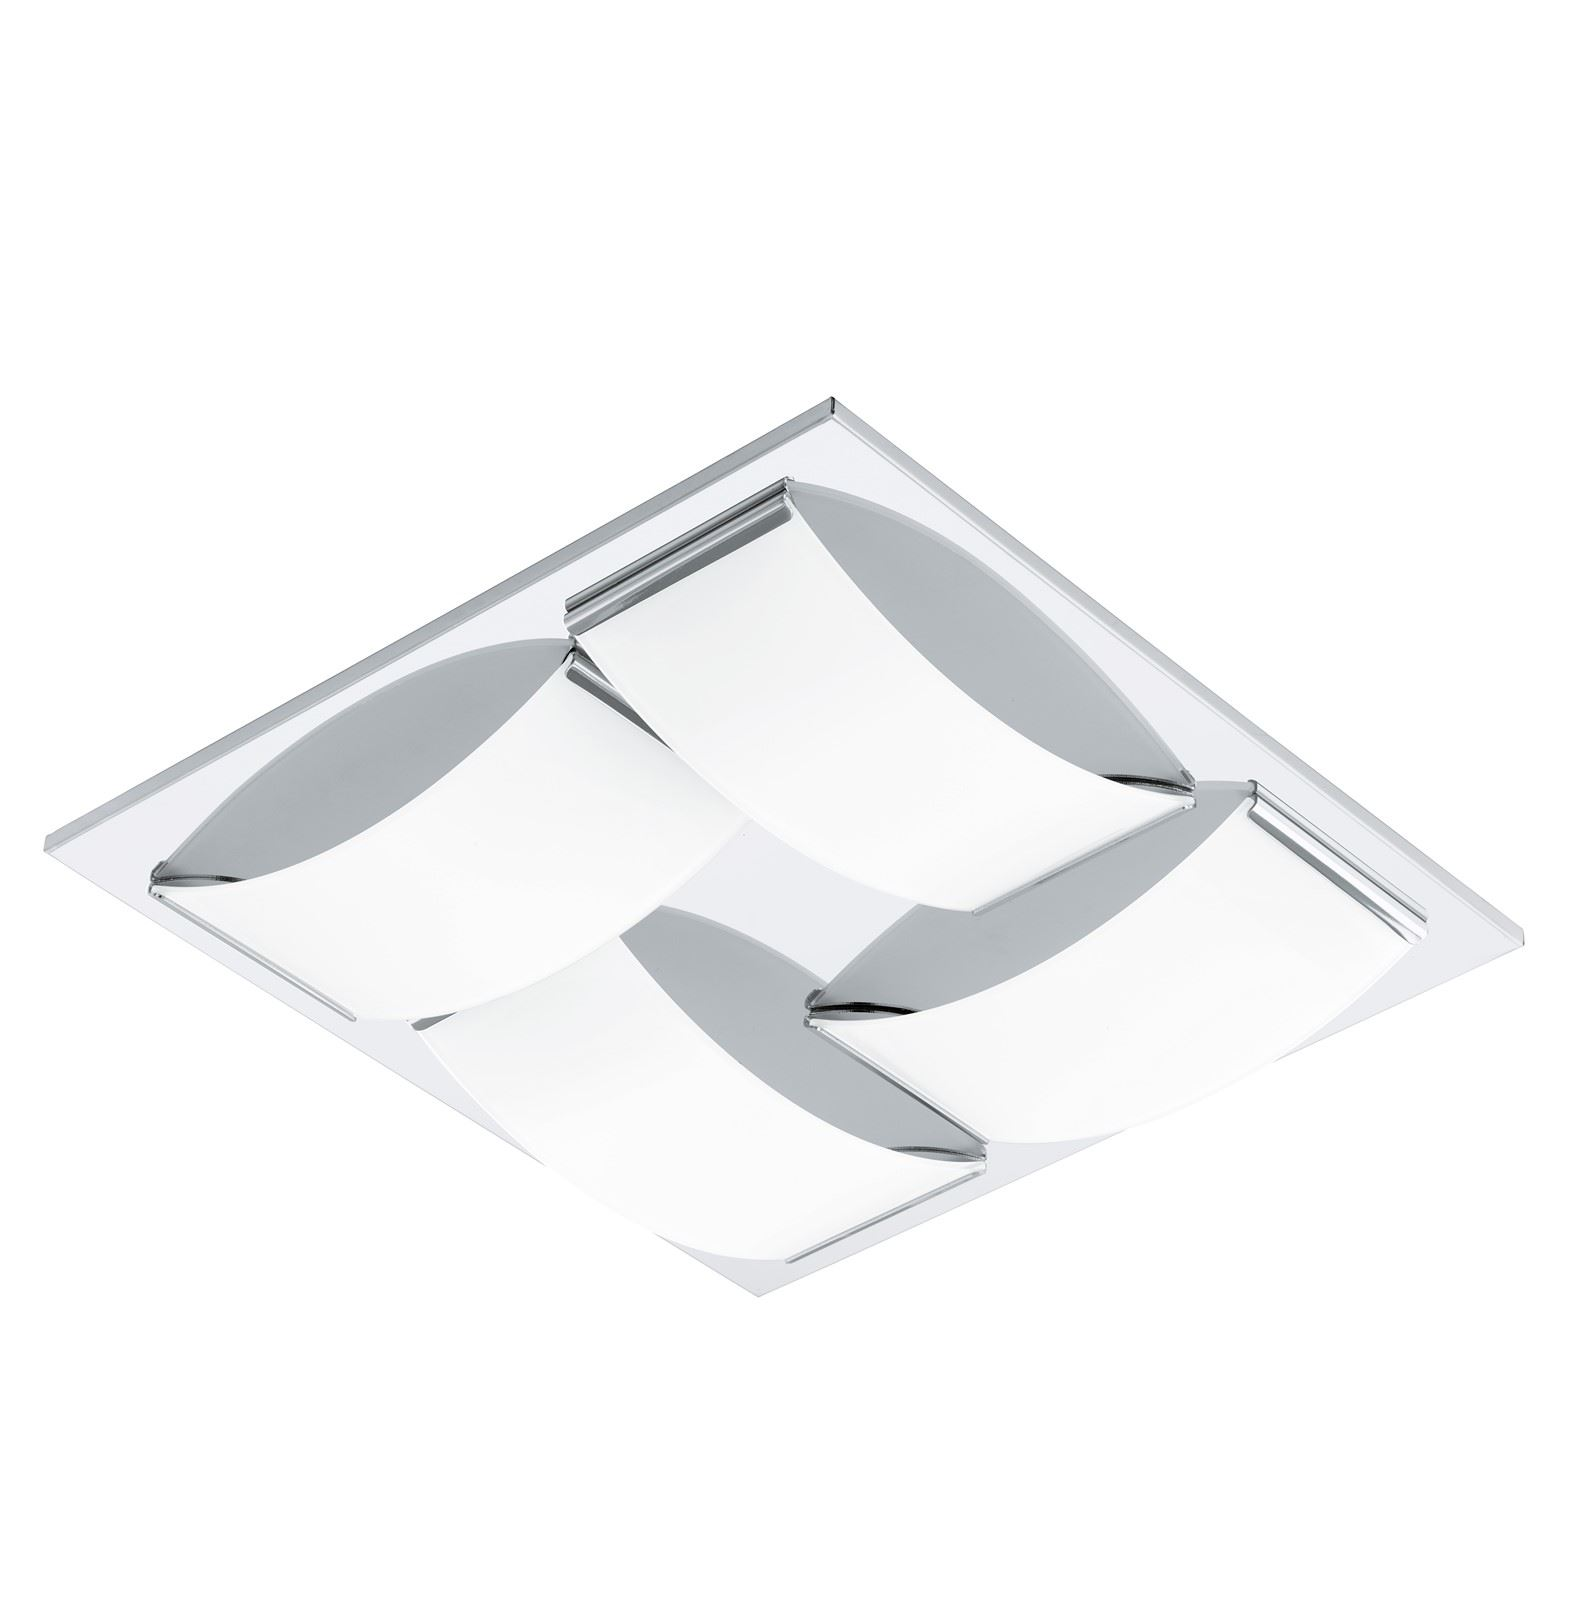 Wasao LED Wall Light/Ceiling Light 4x 5.4W Stainless Steel Chrome White